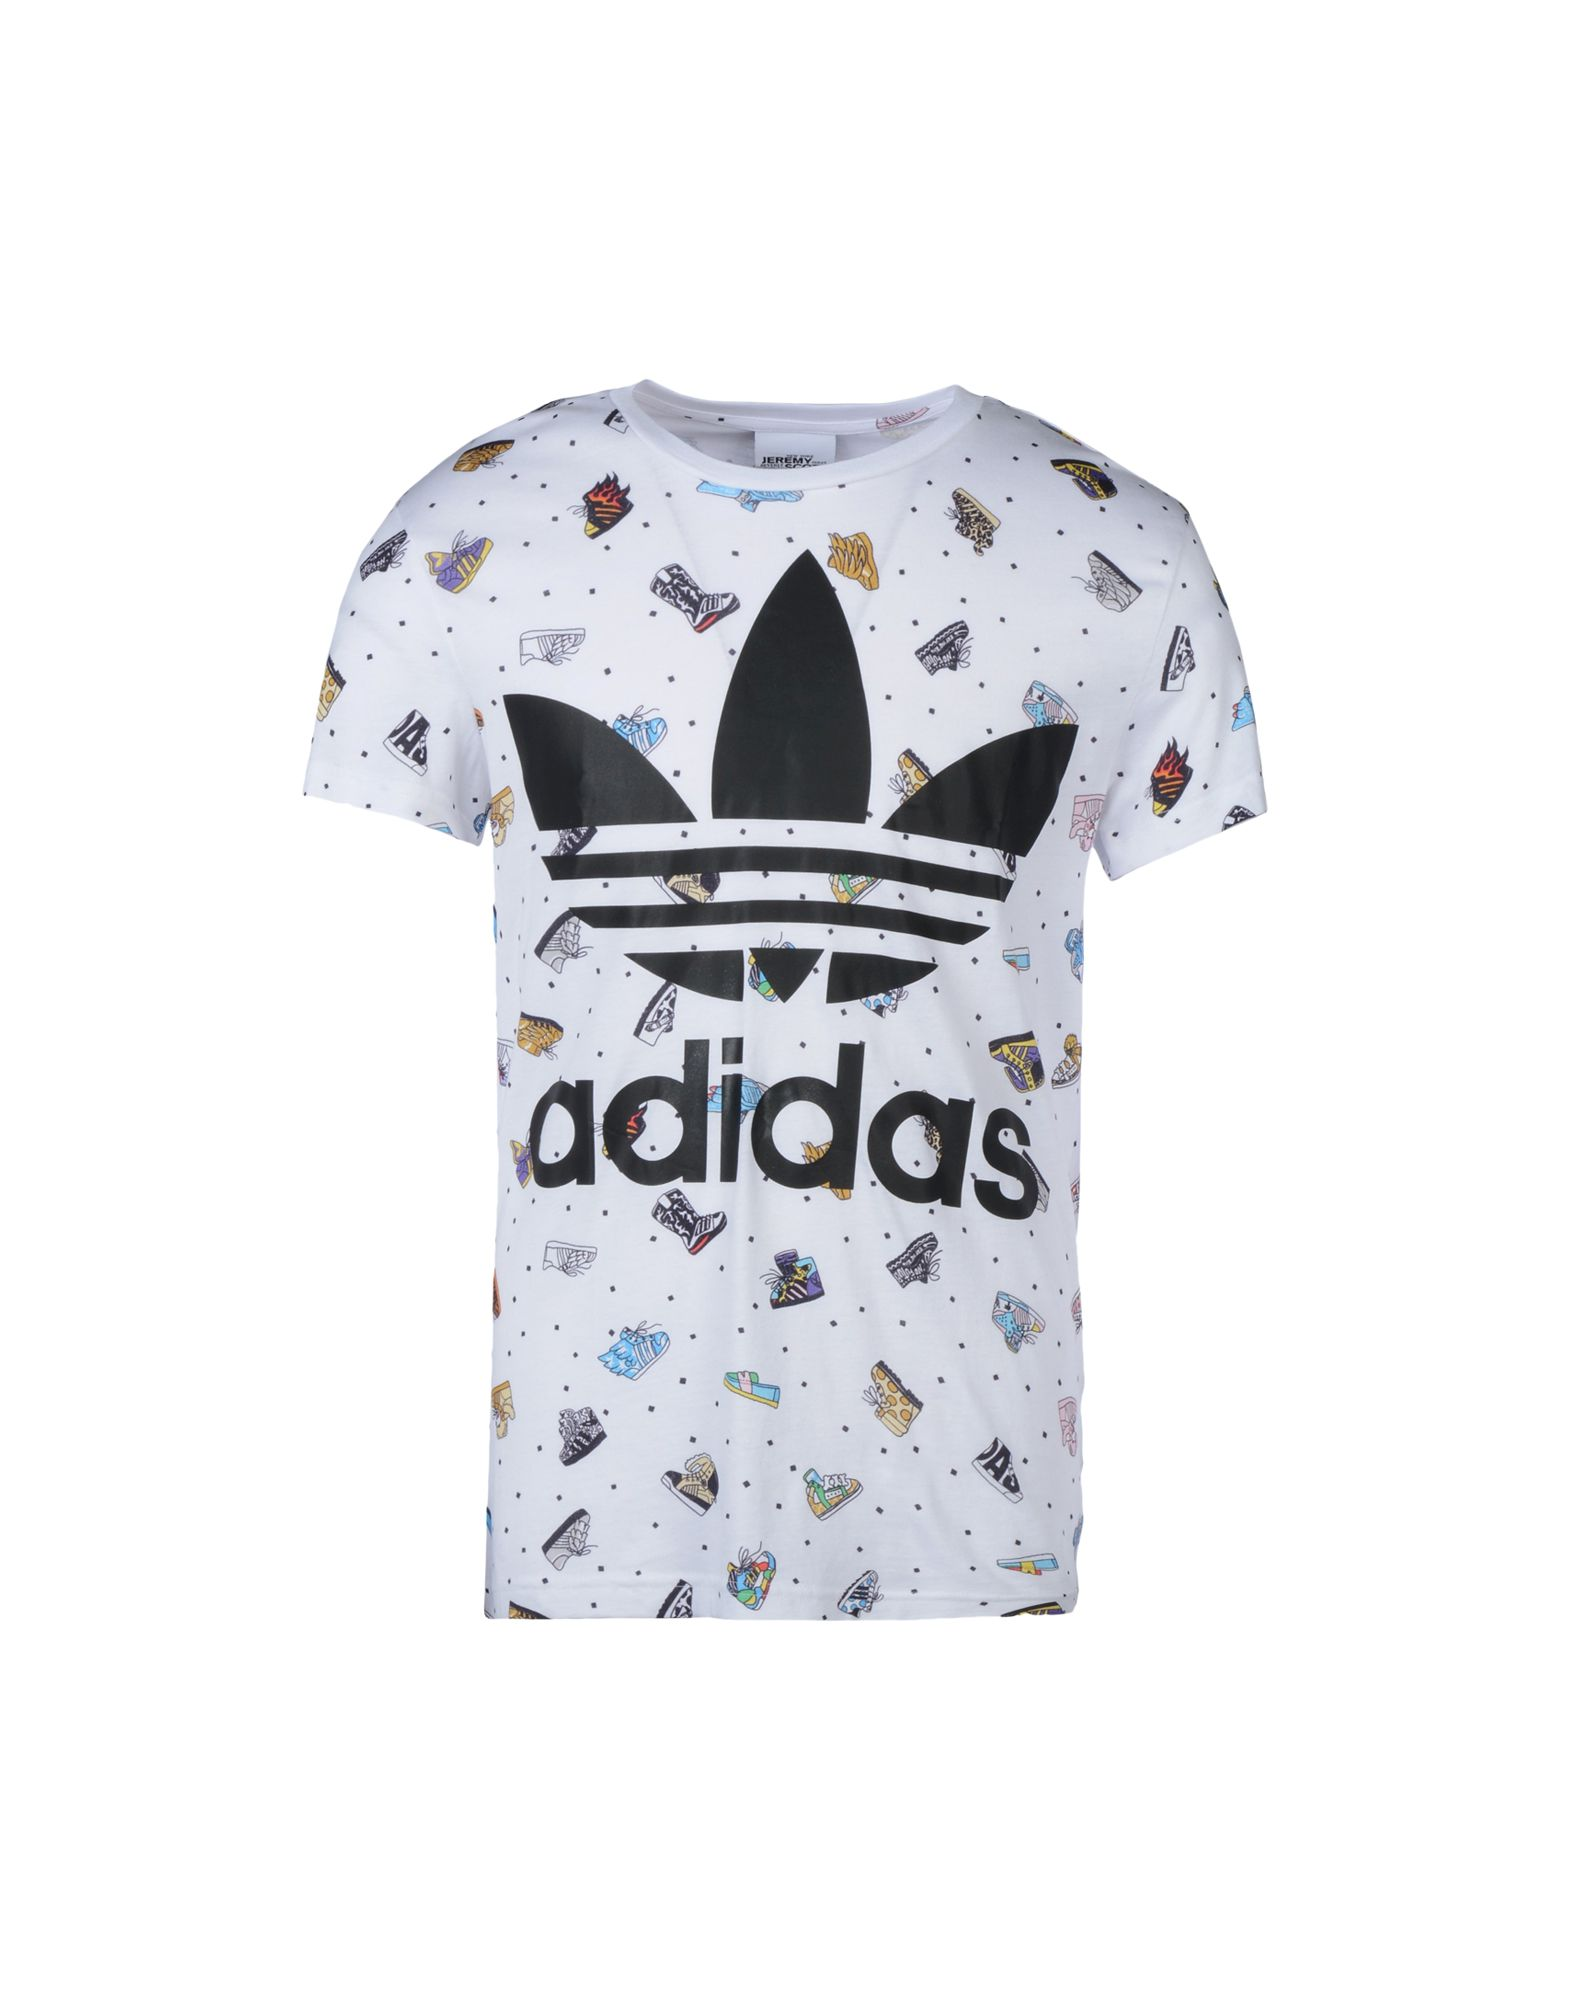 ADIDAS ORIGINALS by JEREMY SCOTT Футболка